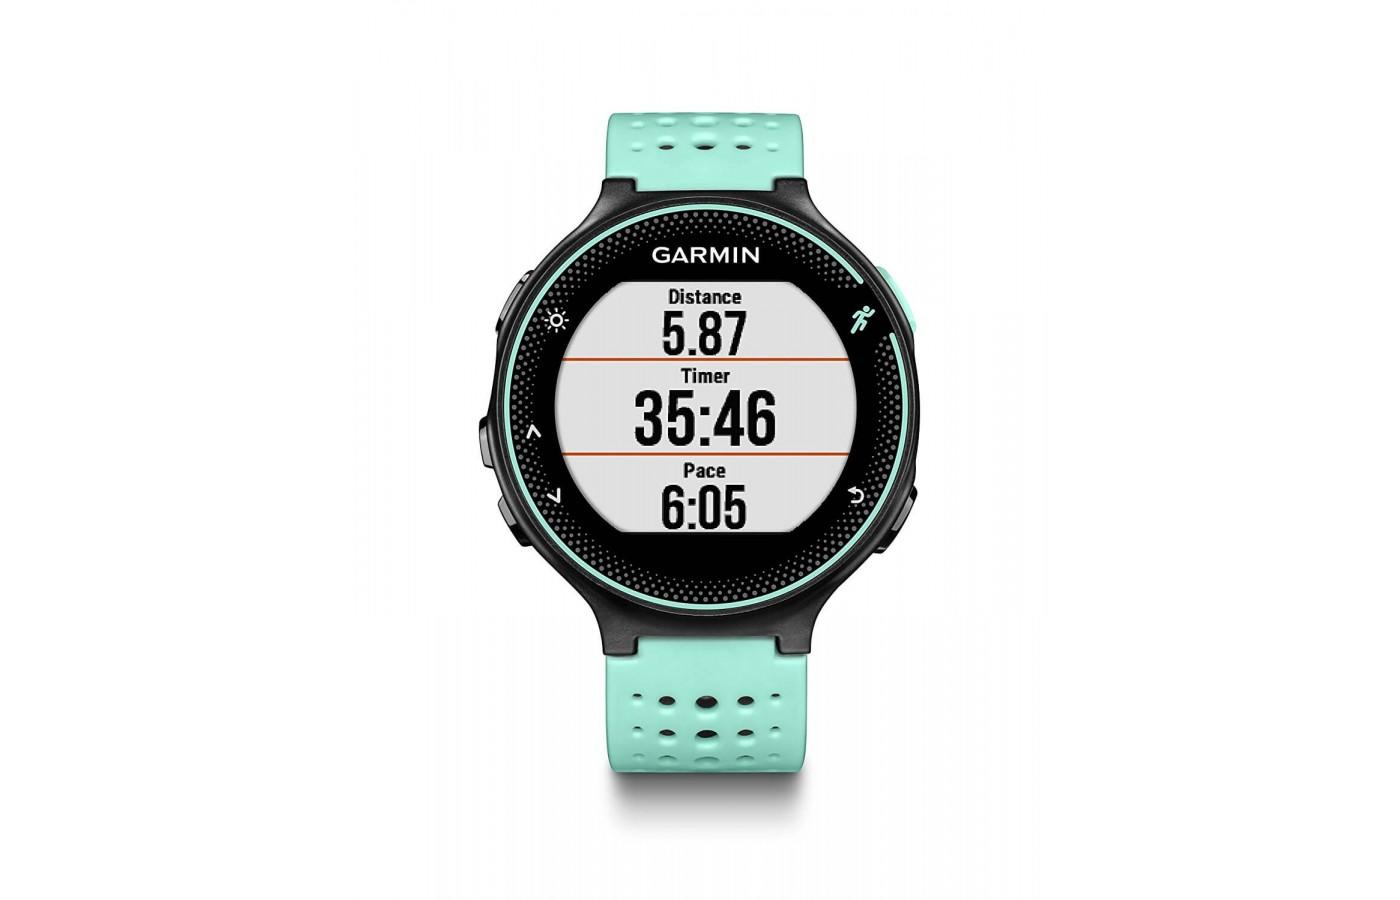 Garmin Forerunner 235 run tracker